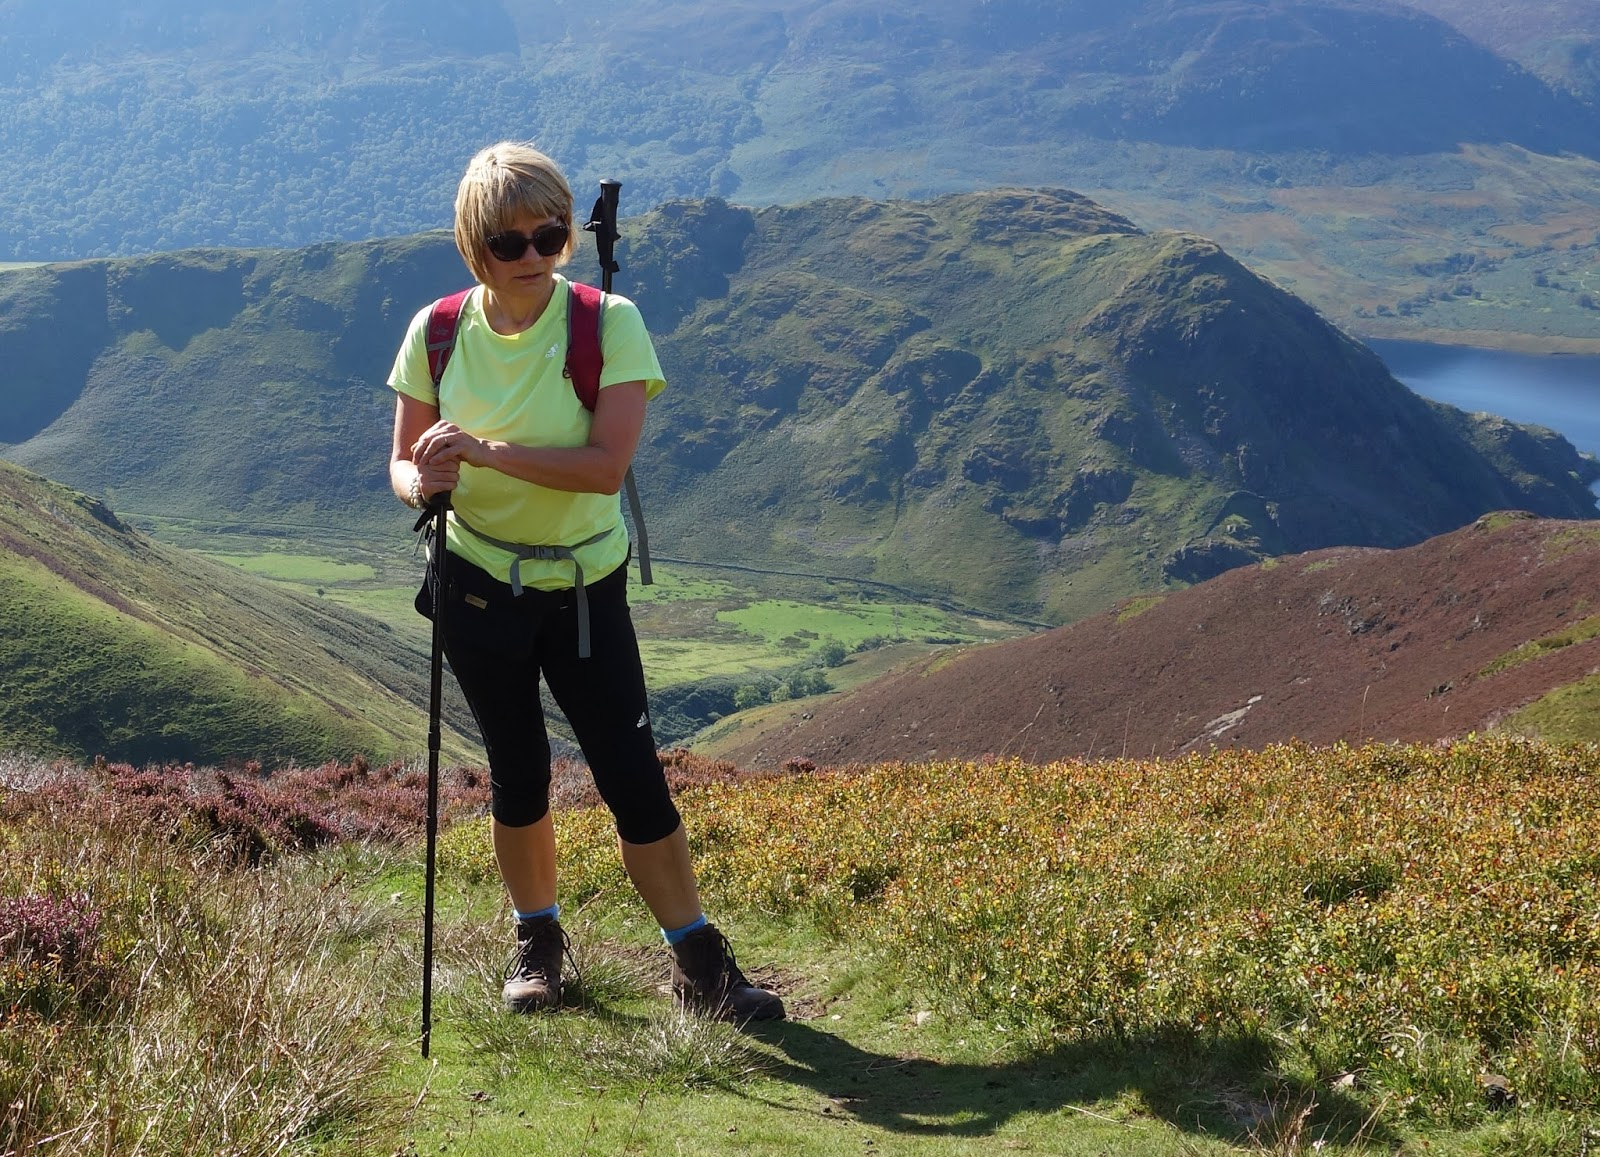 Gail Hanlon from Is This Mutton? on a hill climb overlooking Buttermere Lake, wearing a yellow top and leggings from Adidas